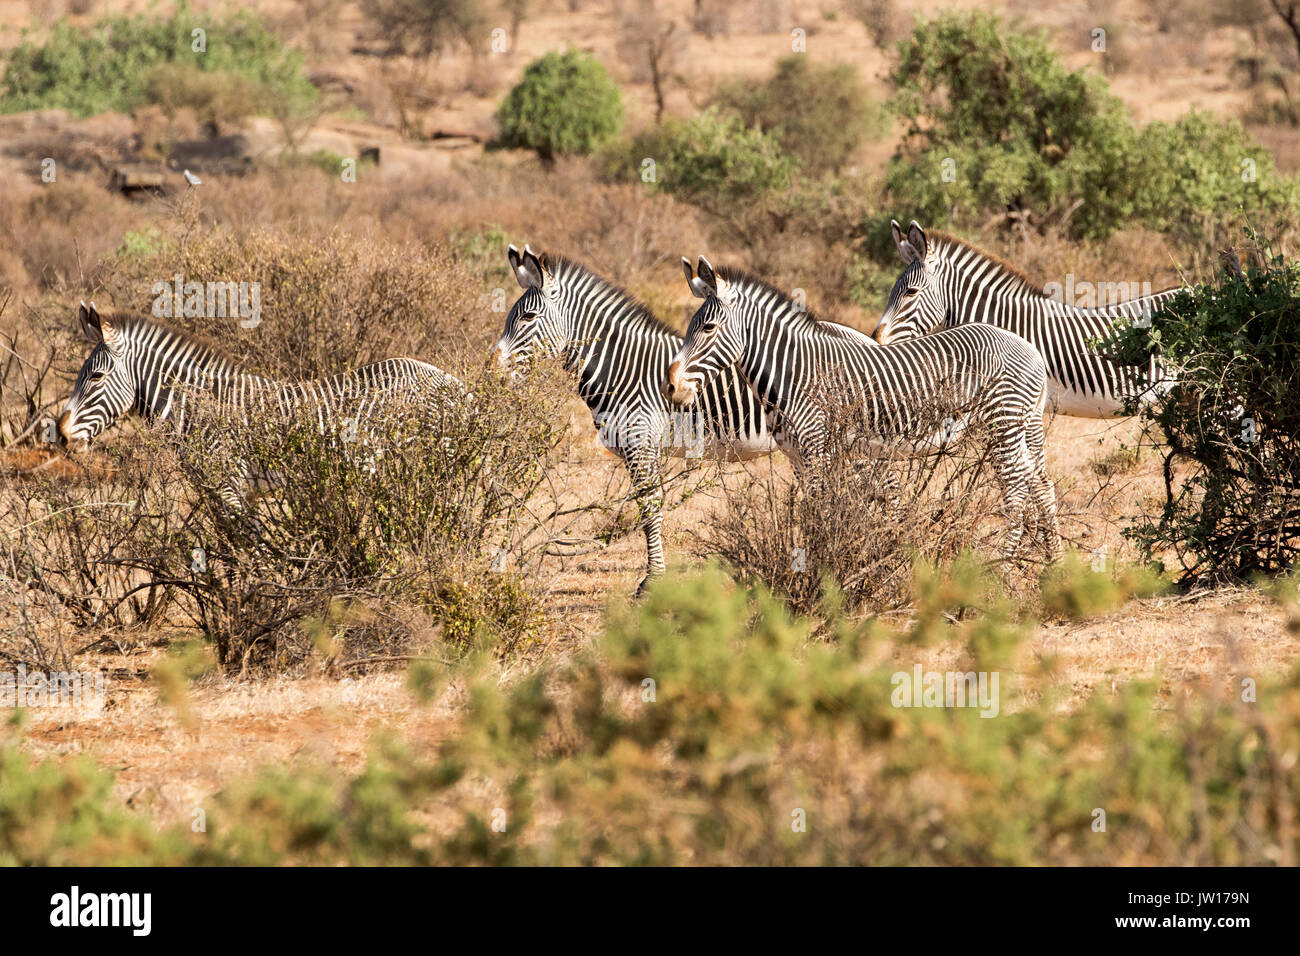 Grevy's Zebra (Equus grevyi) standing on guard towards the direction of a lioness nearby Stock Photo